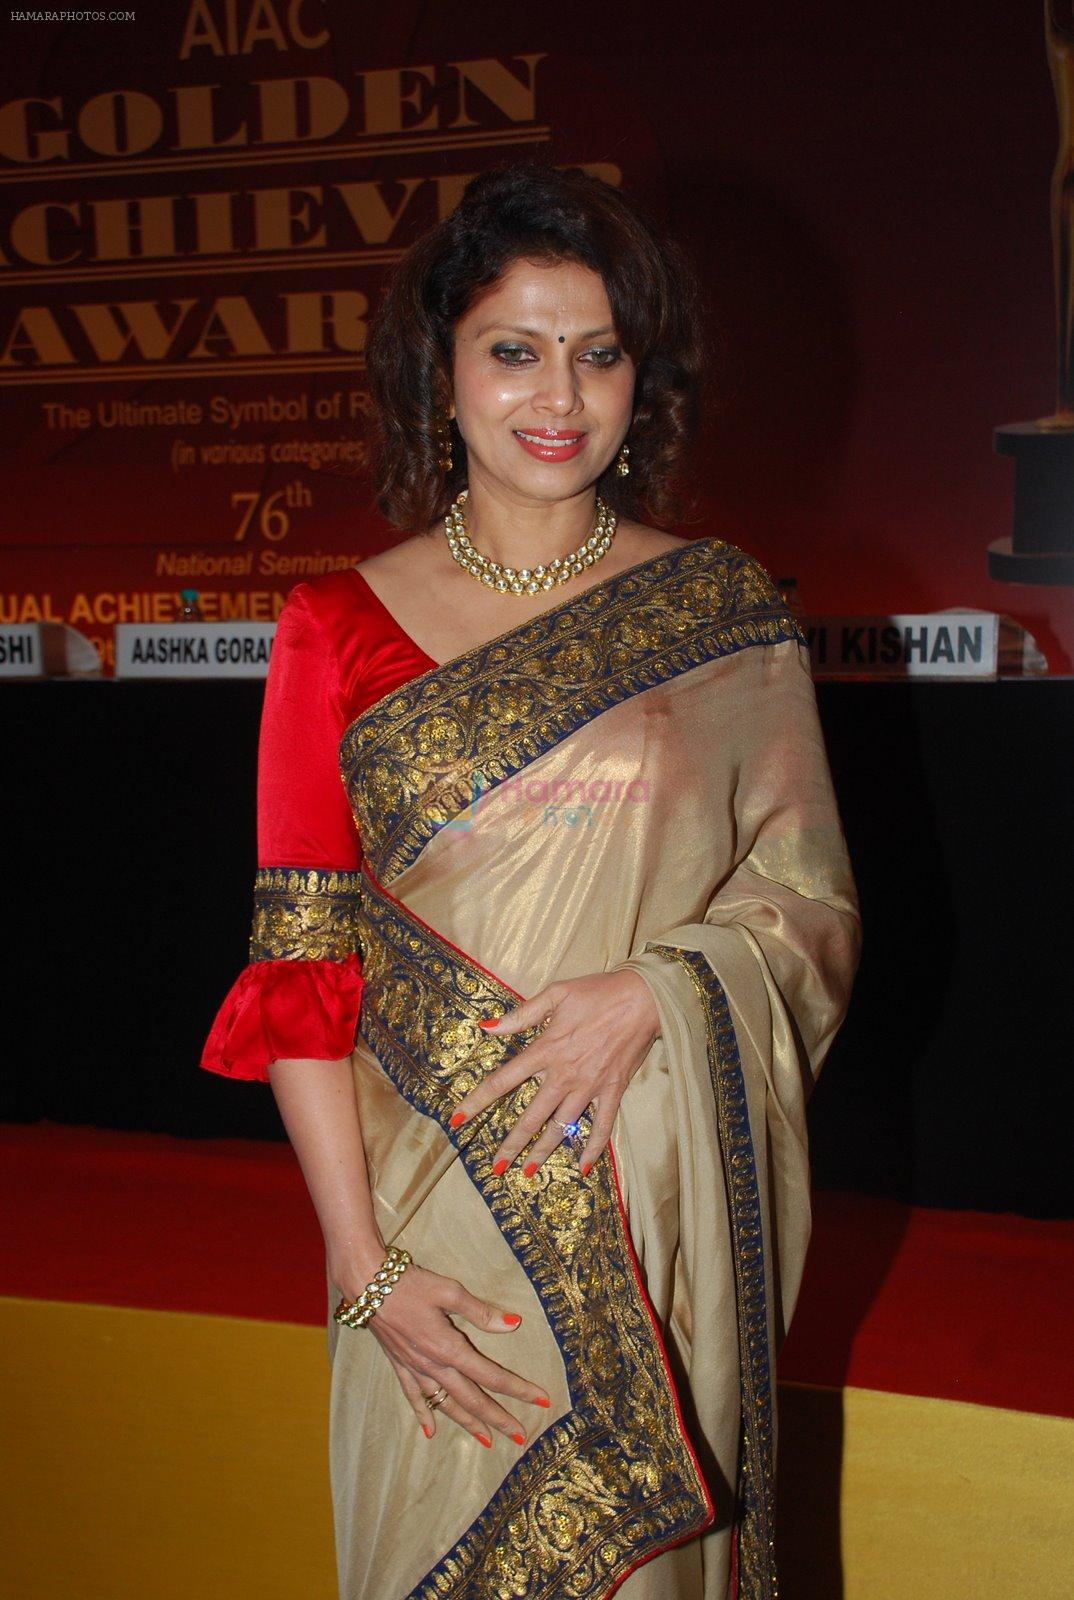 varsha usgaonkar family photosvarsha usgaonkar date of birth, varsha usgaonkar wiki, varsha usgaonkar bikini, varsha usgaonkar hot, varsha usgaonkar family, varsha usgaonkar child, varsha usgaonkar husband ajay shankar, varsha usgaonkar marriage, varsha usgaonkar family photos, varsha usgaonkar husband photo, varsha usgaonkar facebook, varsha usgaonkar ajay sharma, varsha usgaonkar marathi songs mp3, varsha usgaonkar height